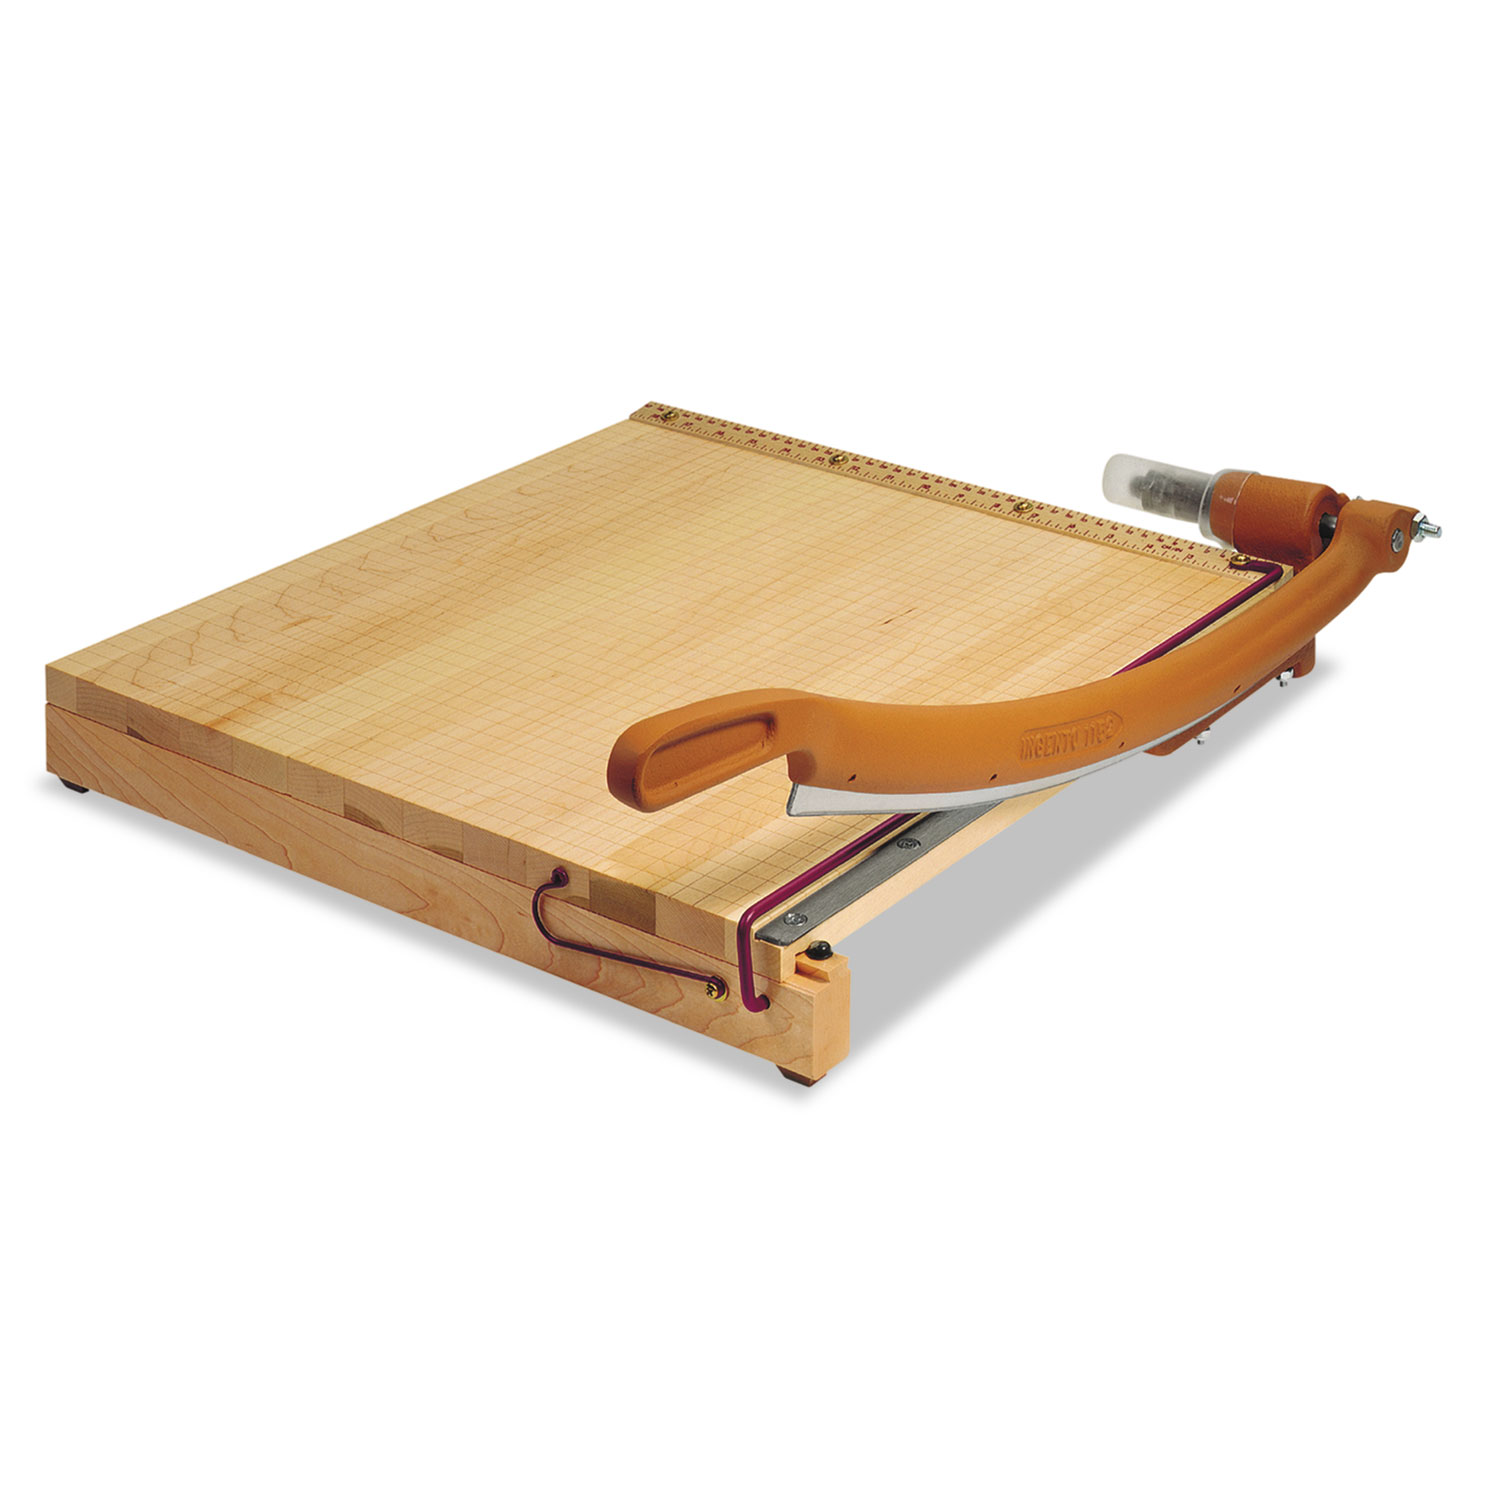 ClassicCut Ingento Solid Maple Paper Trimmer, 15 Sheets, Maple Base, 24 x 24